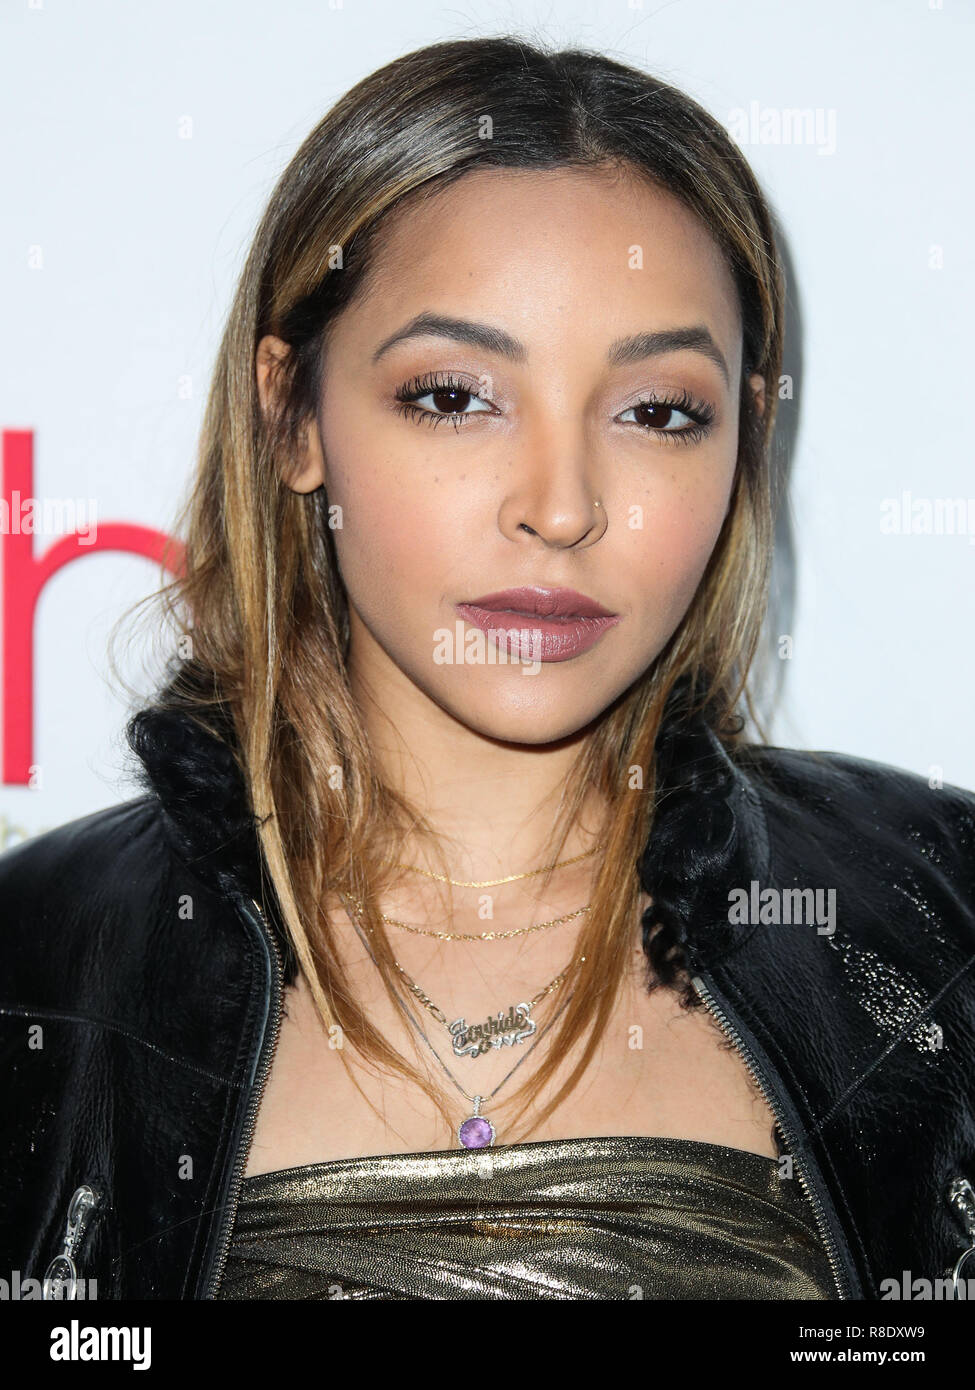 HOLLYWOOD, LOS ANGELES, CA, USA - FEBRUARY 25: Tinashe Jorgensen Kachingwe at the 4th Annual Hollywood Beauty Awards held at Avalon Hollywood on February 25, 2018 in Hollywood, Los Angeles, California, United States. (Photo by Xavier Collin/Image Press Agency) - Stock Image